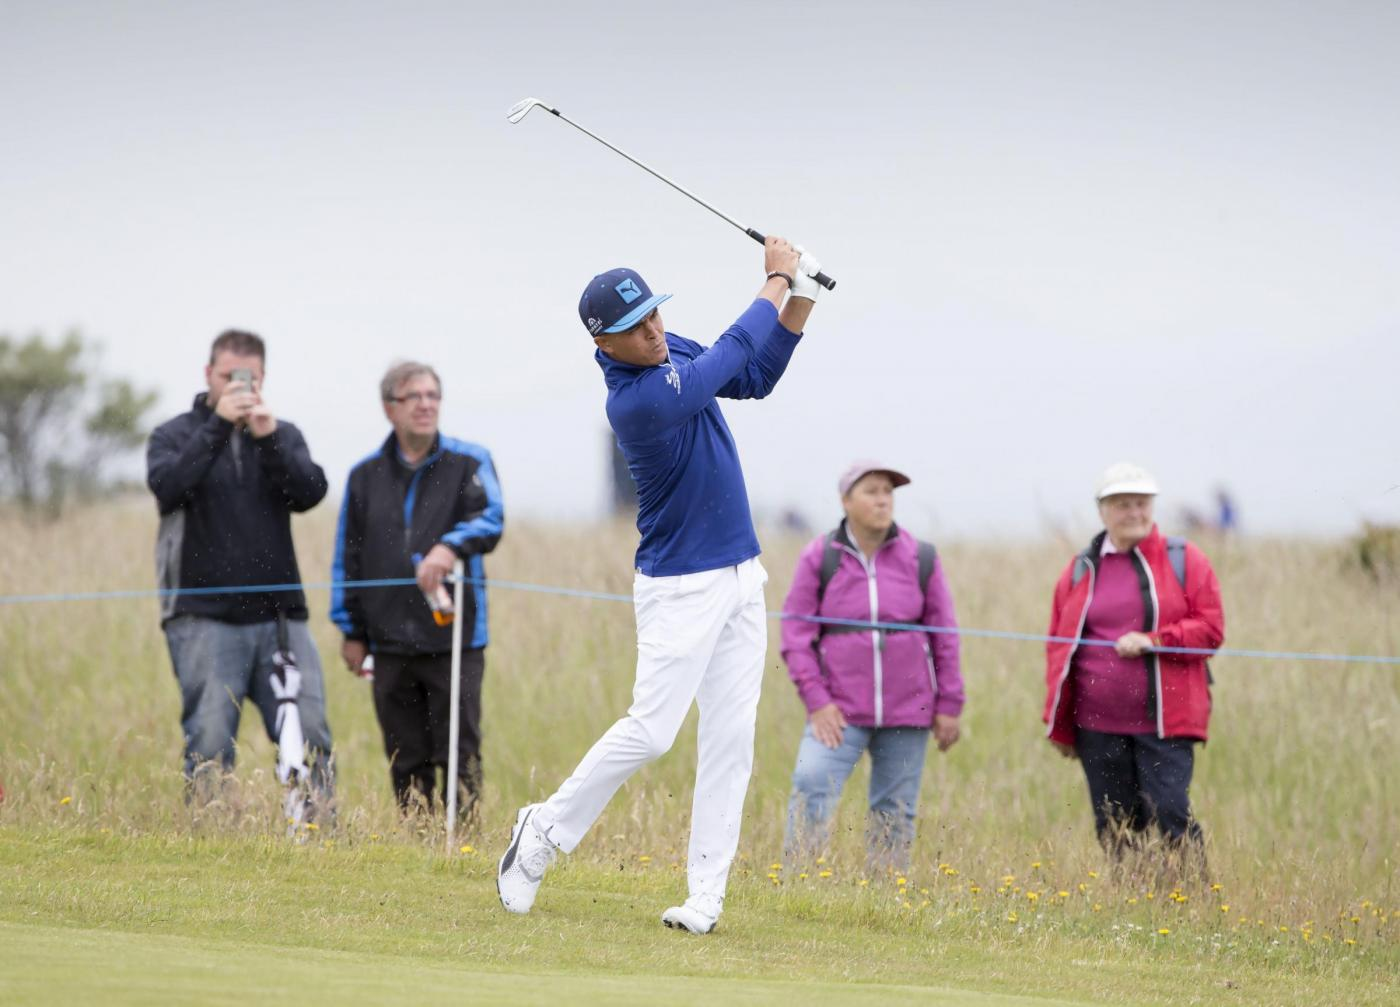 USA's Ricky Fowler plays his approach to the 10th green during a preview day ahead of the Scottish Open at Gullane Golf Club, East Lothian. PRESS ASSOCIATION Photo. Picture date: Wednesday July 8, 2015. See PA story GOLF Gullane. Photo credit should read: Kenny Smith/PA Wire. RESTRICTIONS: Editorial use only. No commercial use. No false commercial association. No video emulation. No manipulation of images.